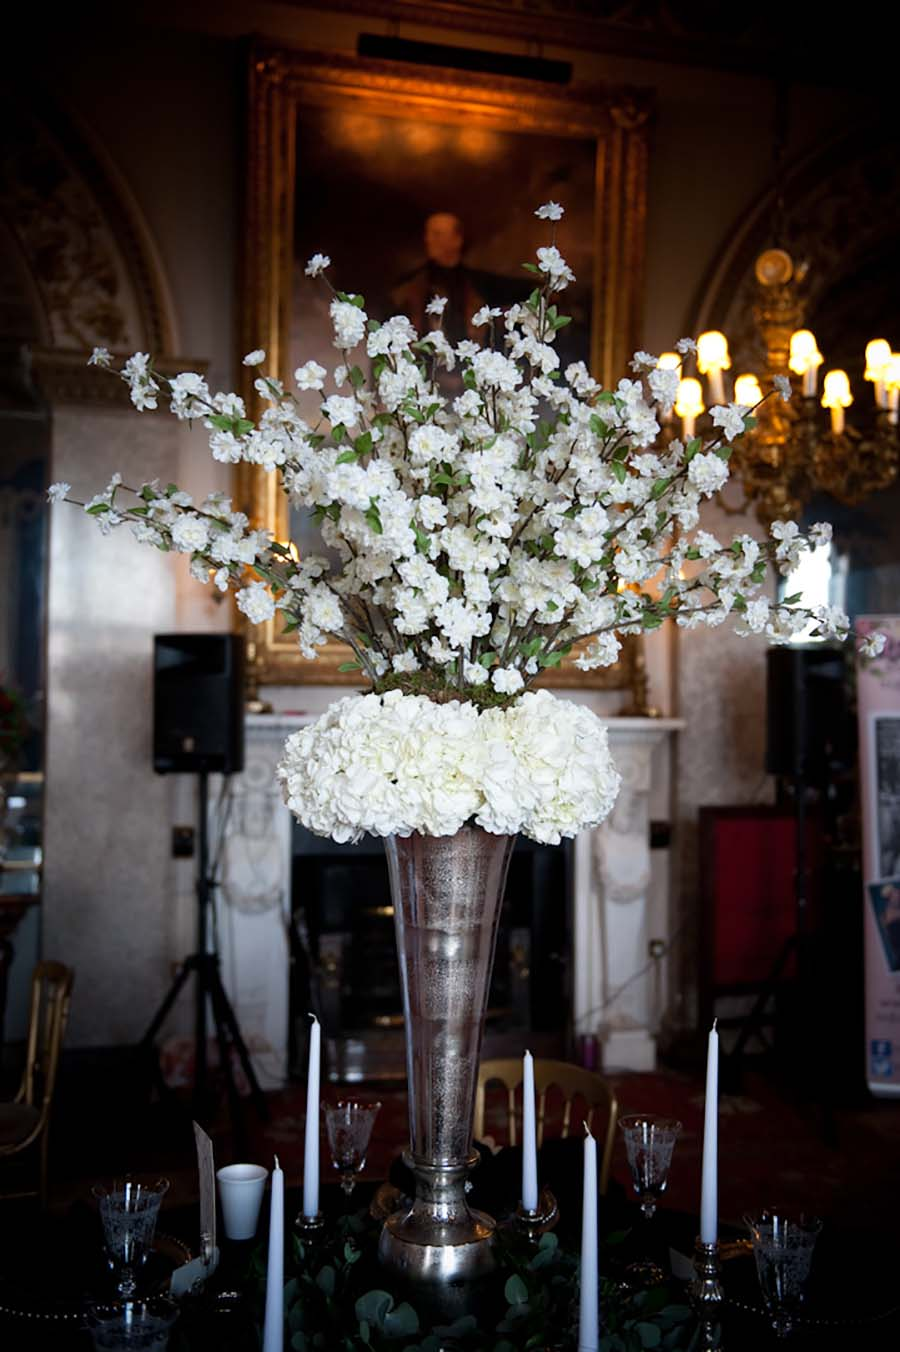 Buckinghams-at-belvoir-castle-wedding-fair-rachael-connerton-photography-119